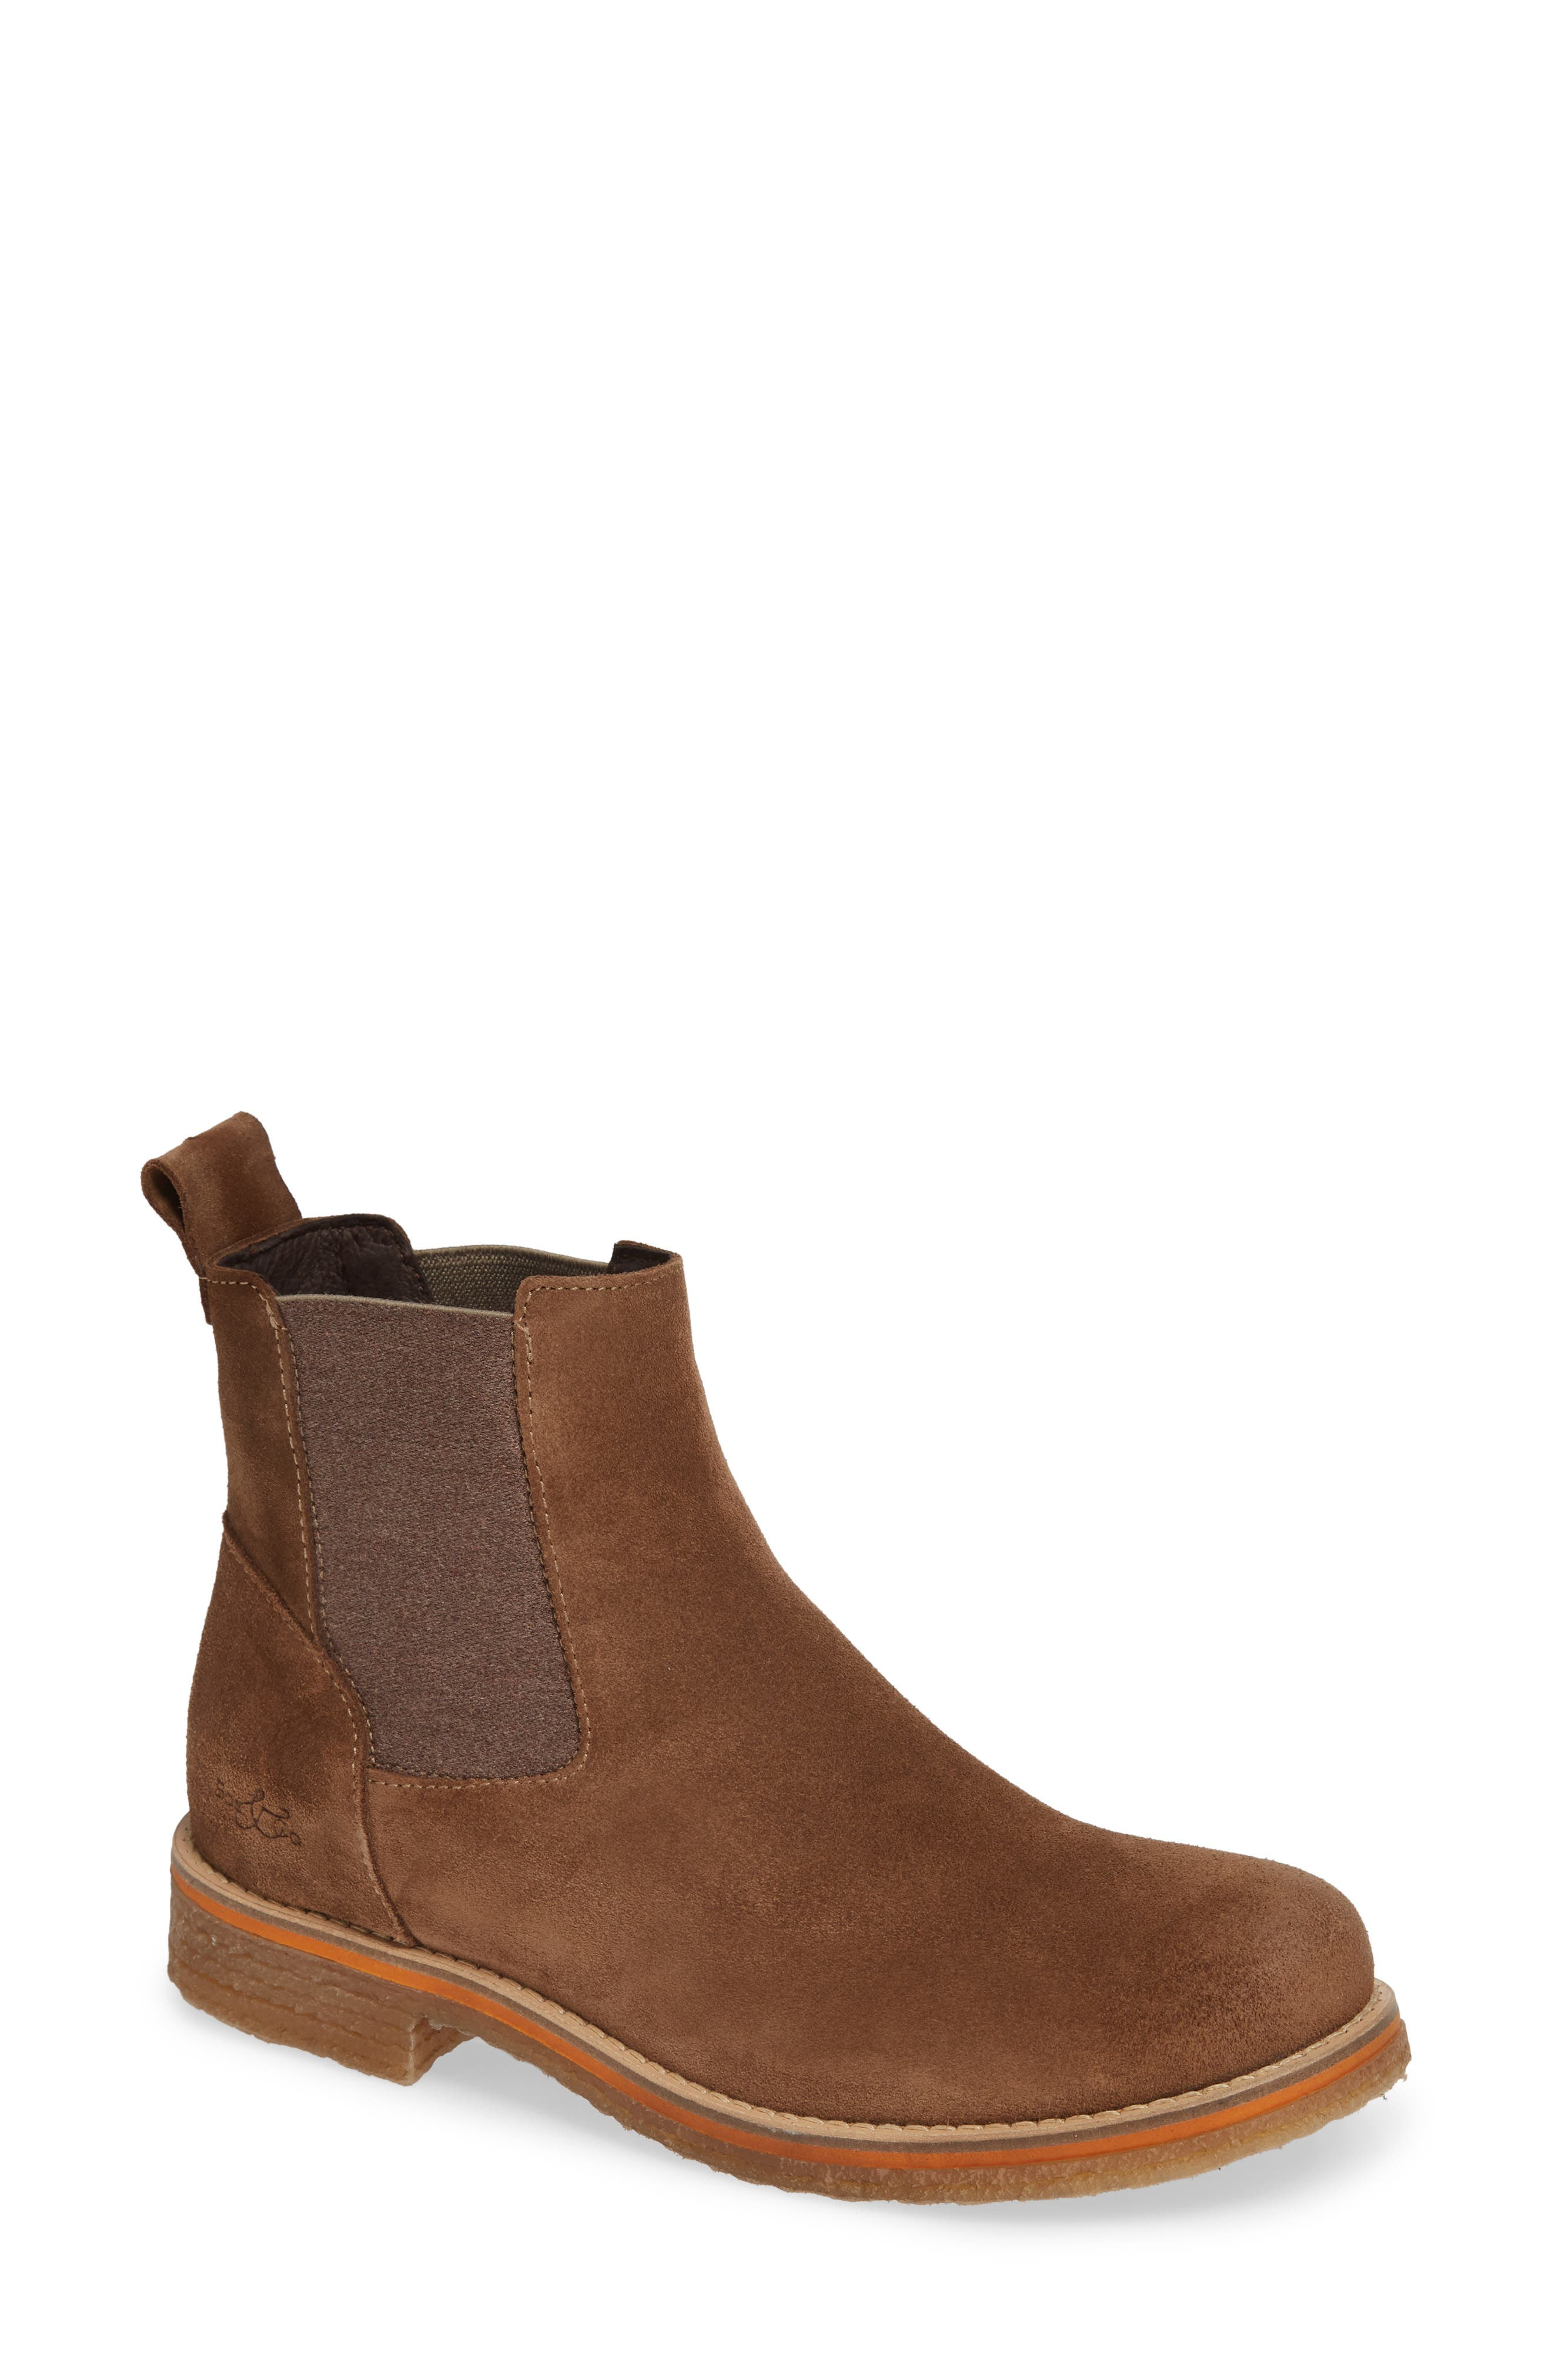 Bos. & Co. Basin Chelsea Boot, Beige